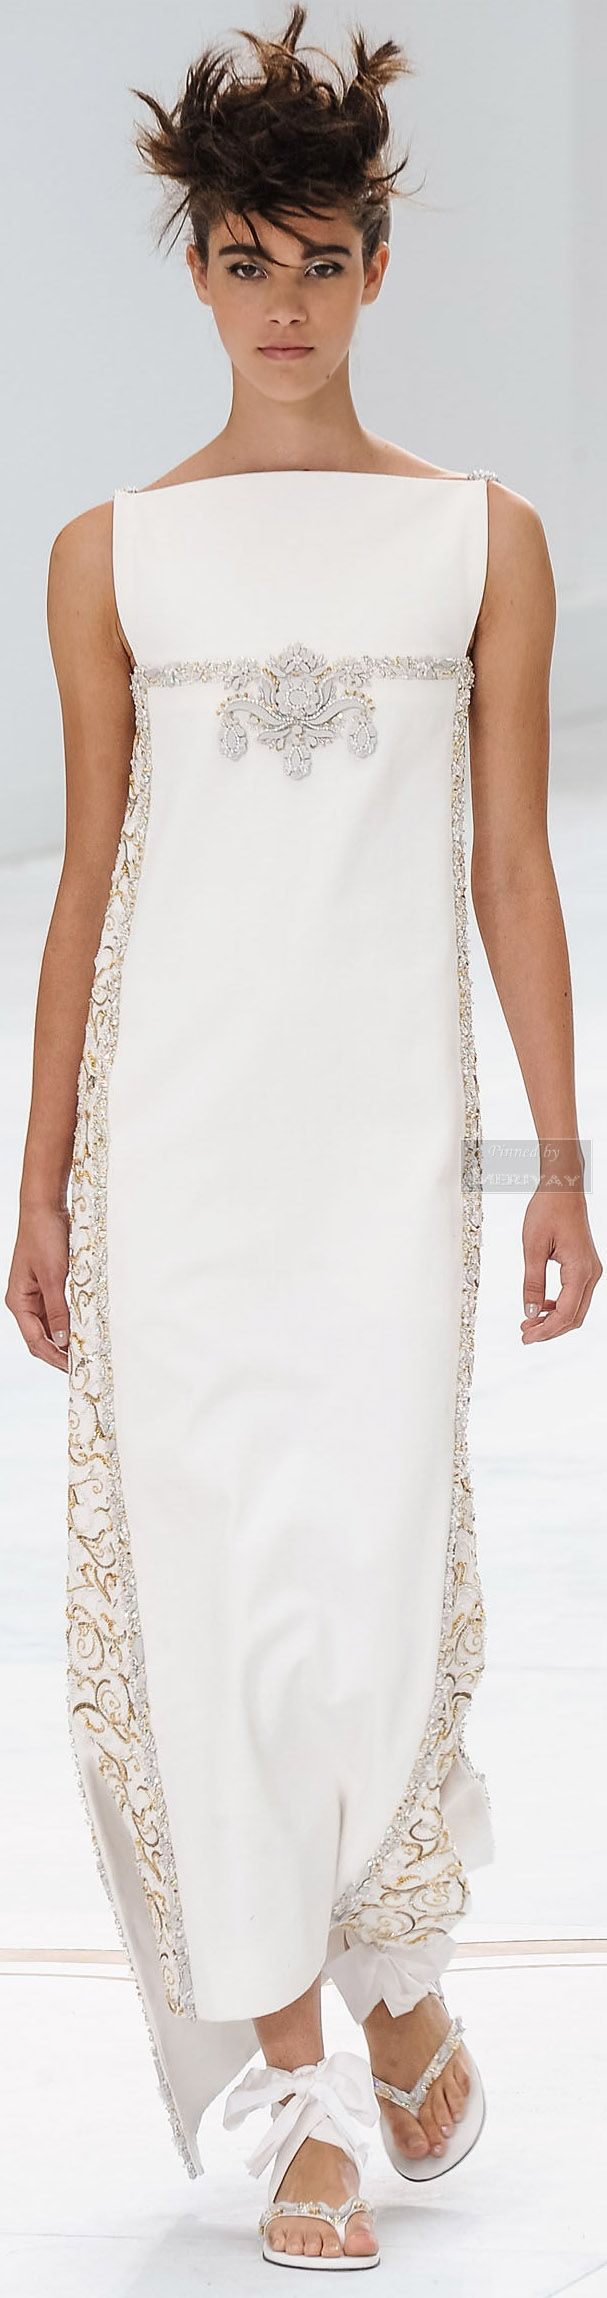 Chanel. One can't see the shoulders very well but  they are jewled/embroidered and I like the bodice too.